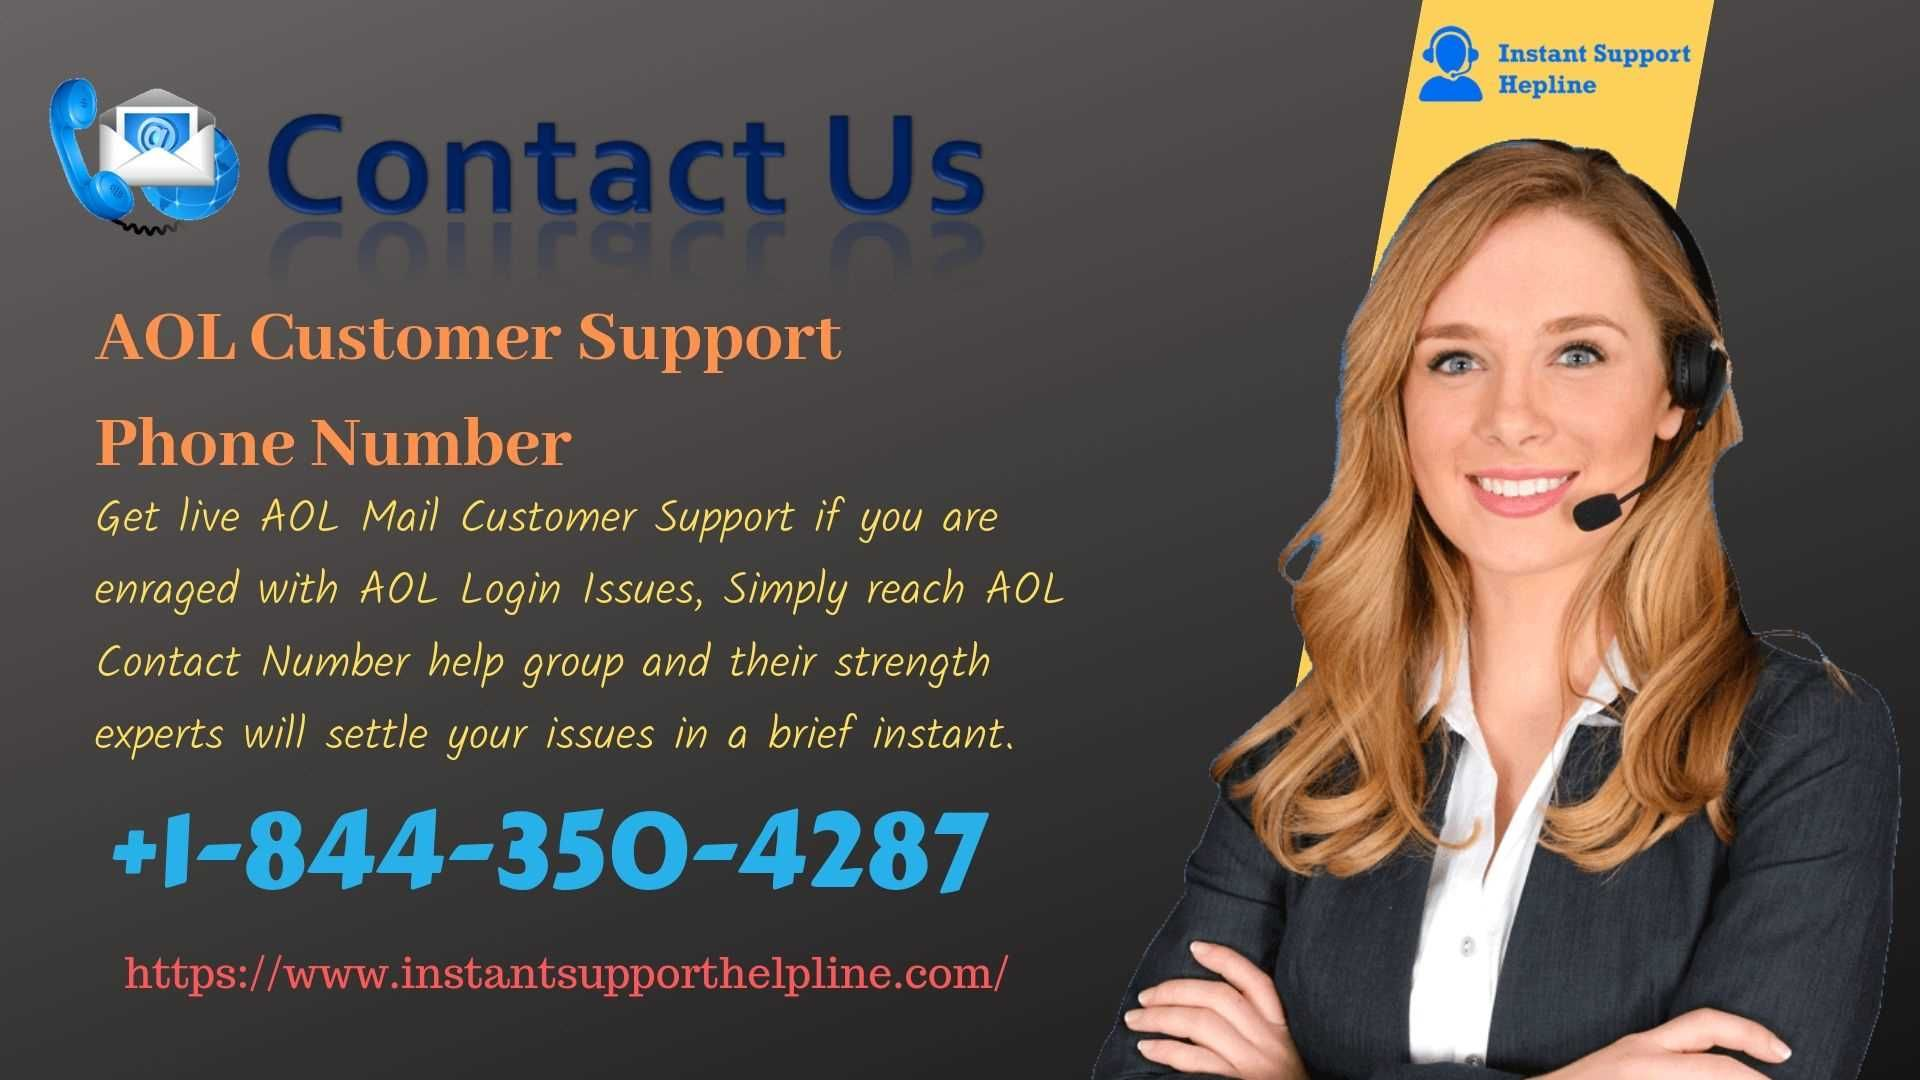 Instant Help for AOL Error 420 via AOL Customer Support